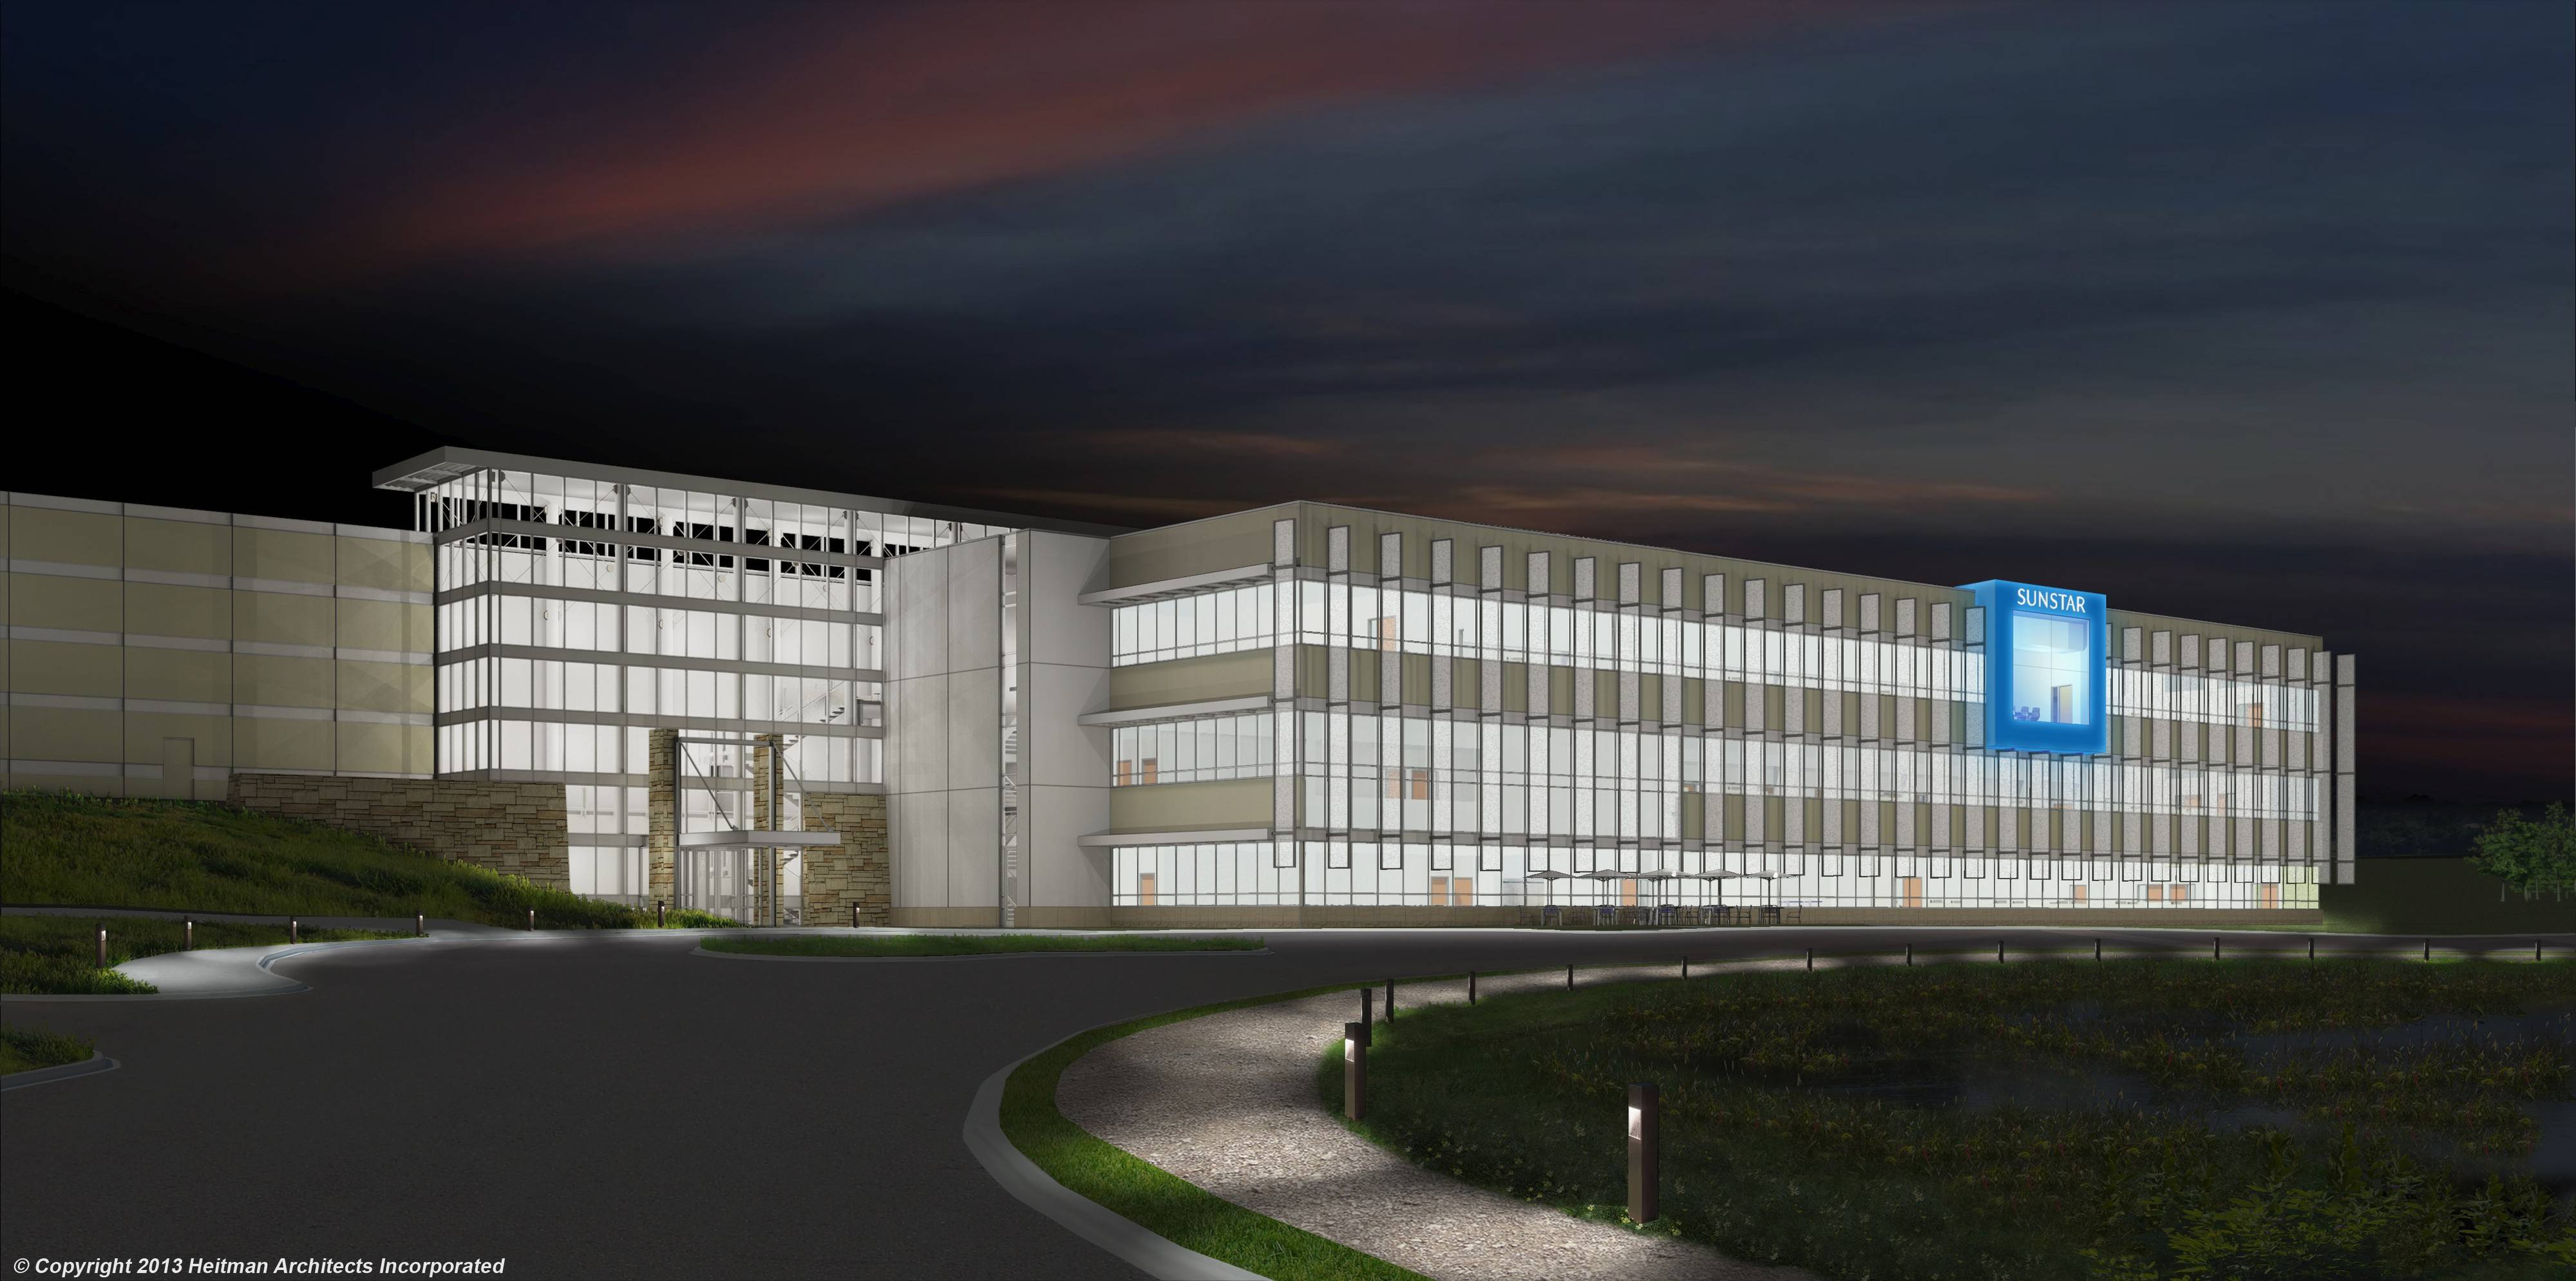 Sunstar Americas Inc.'s 302,000-square-foot North American headquarters is expected to bring 400 new jobs to Schaumburg. The building will sit north of the Jane Addams Memorial Tollway east of Roselle Road.